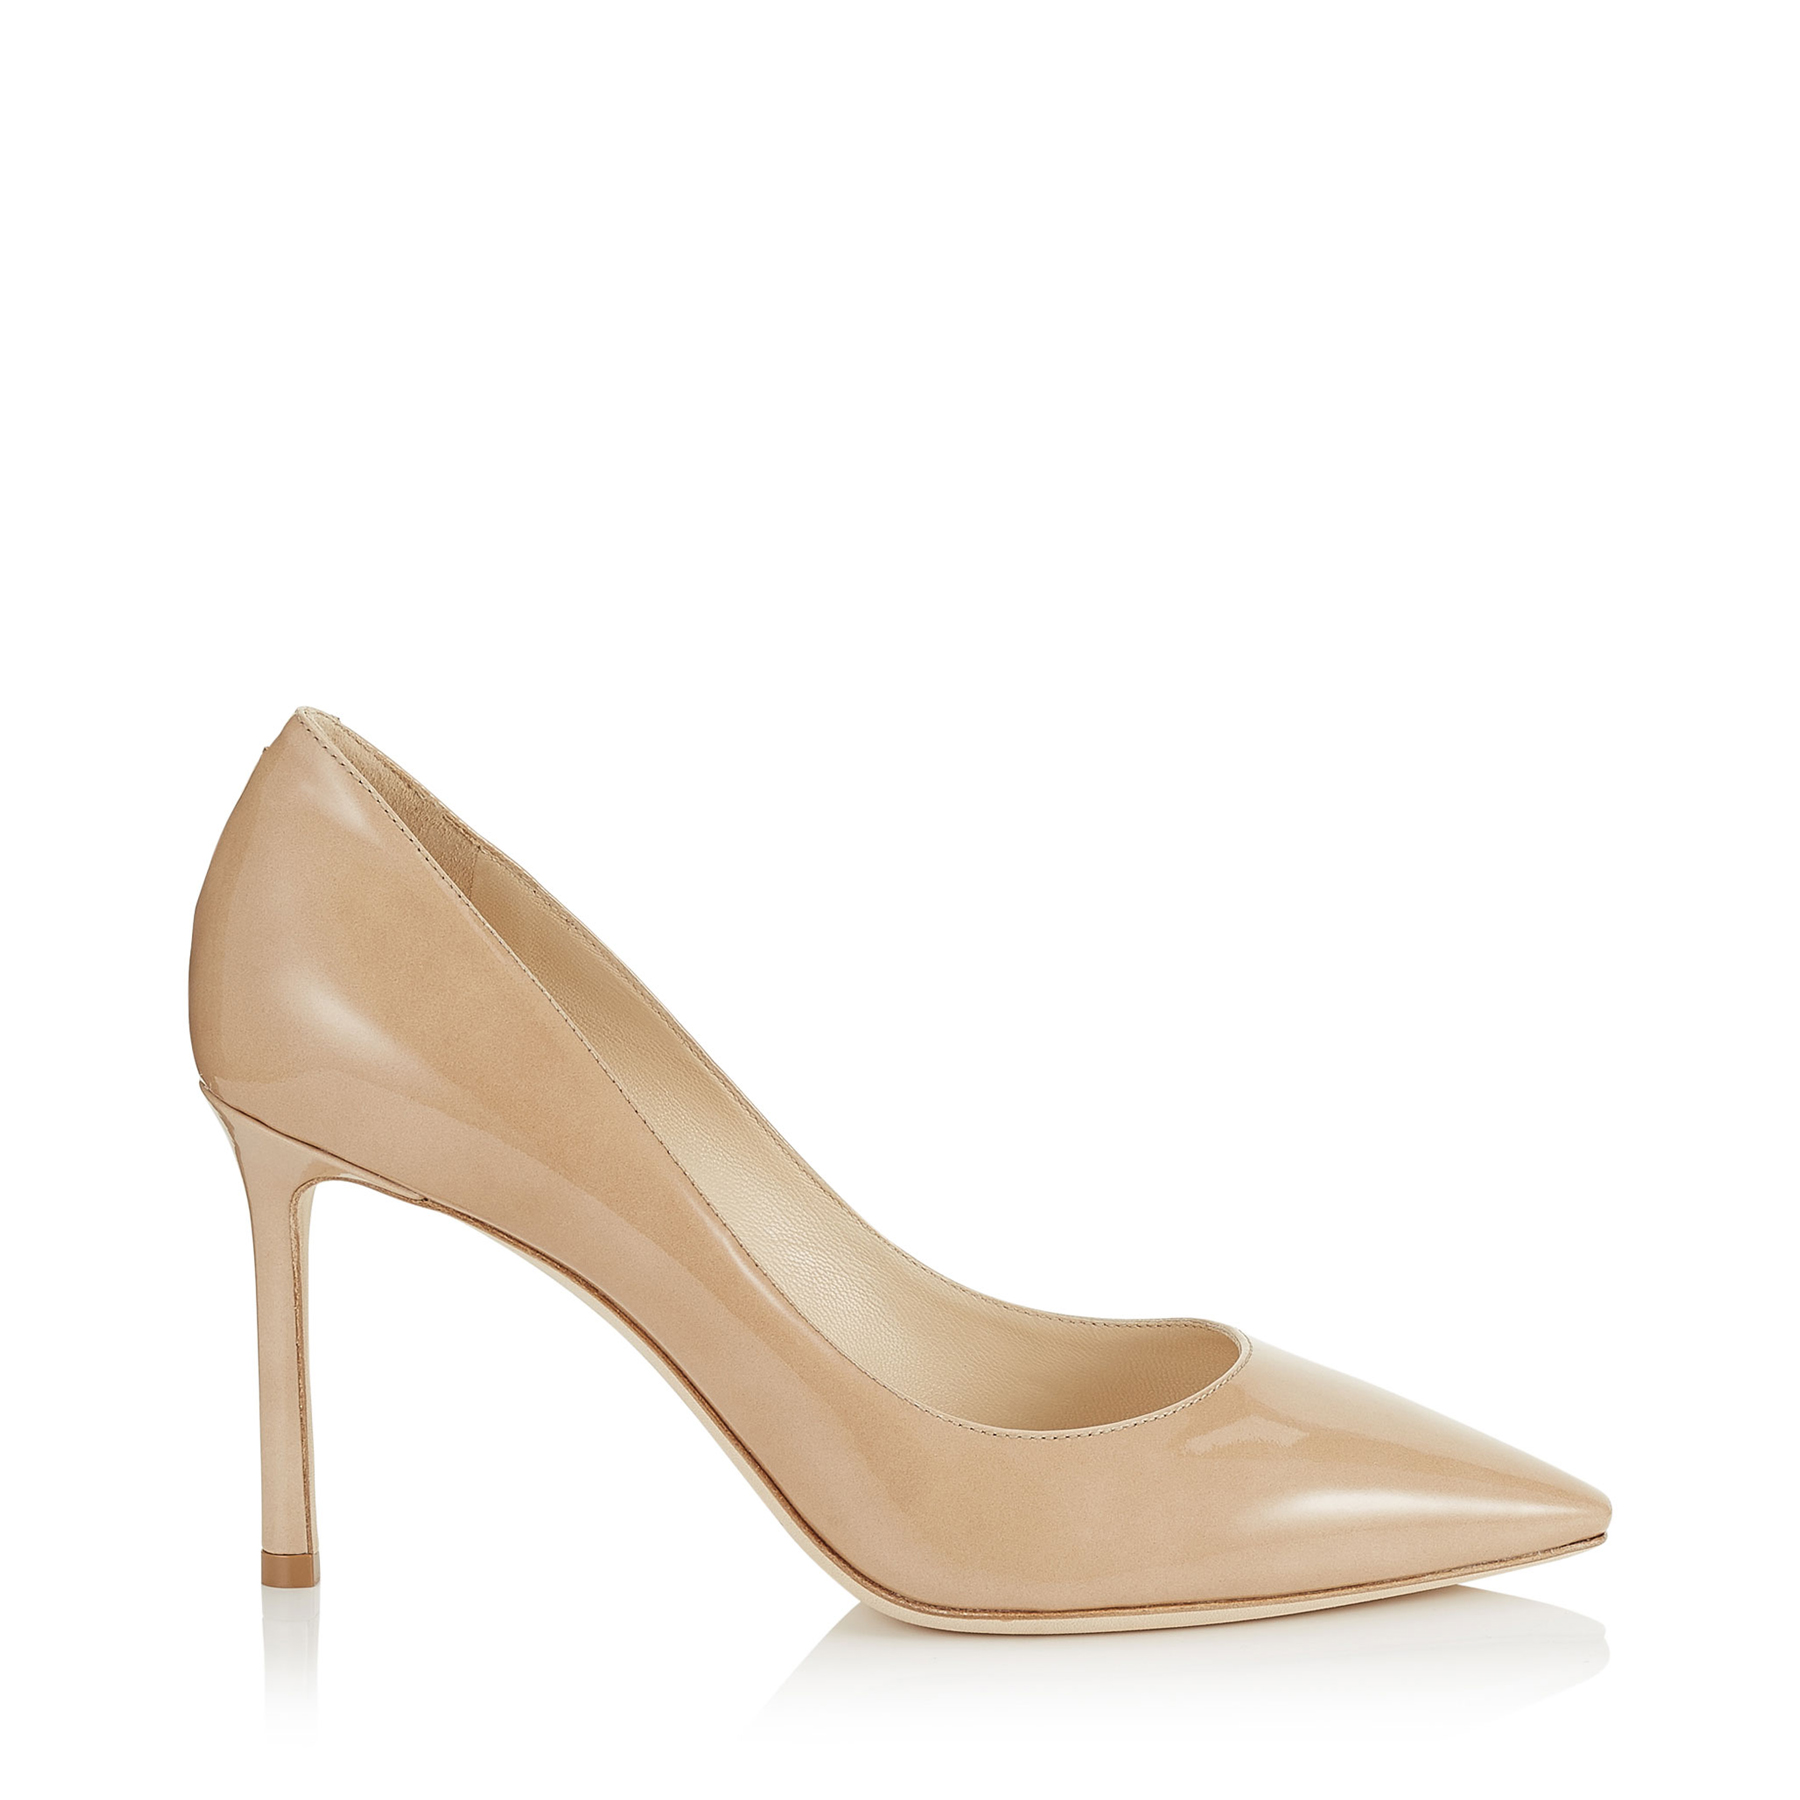 ROMY 85 Nude Patent Leather Pointy Toe Pumps